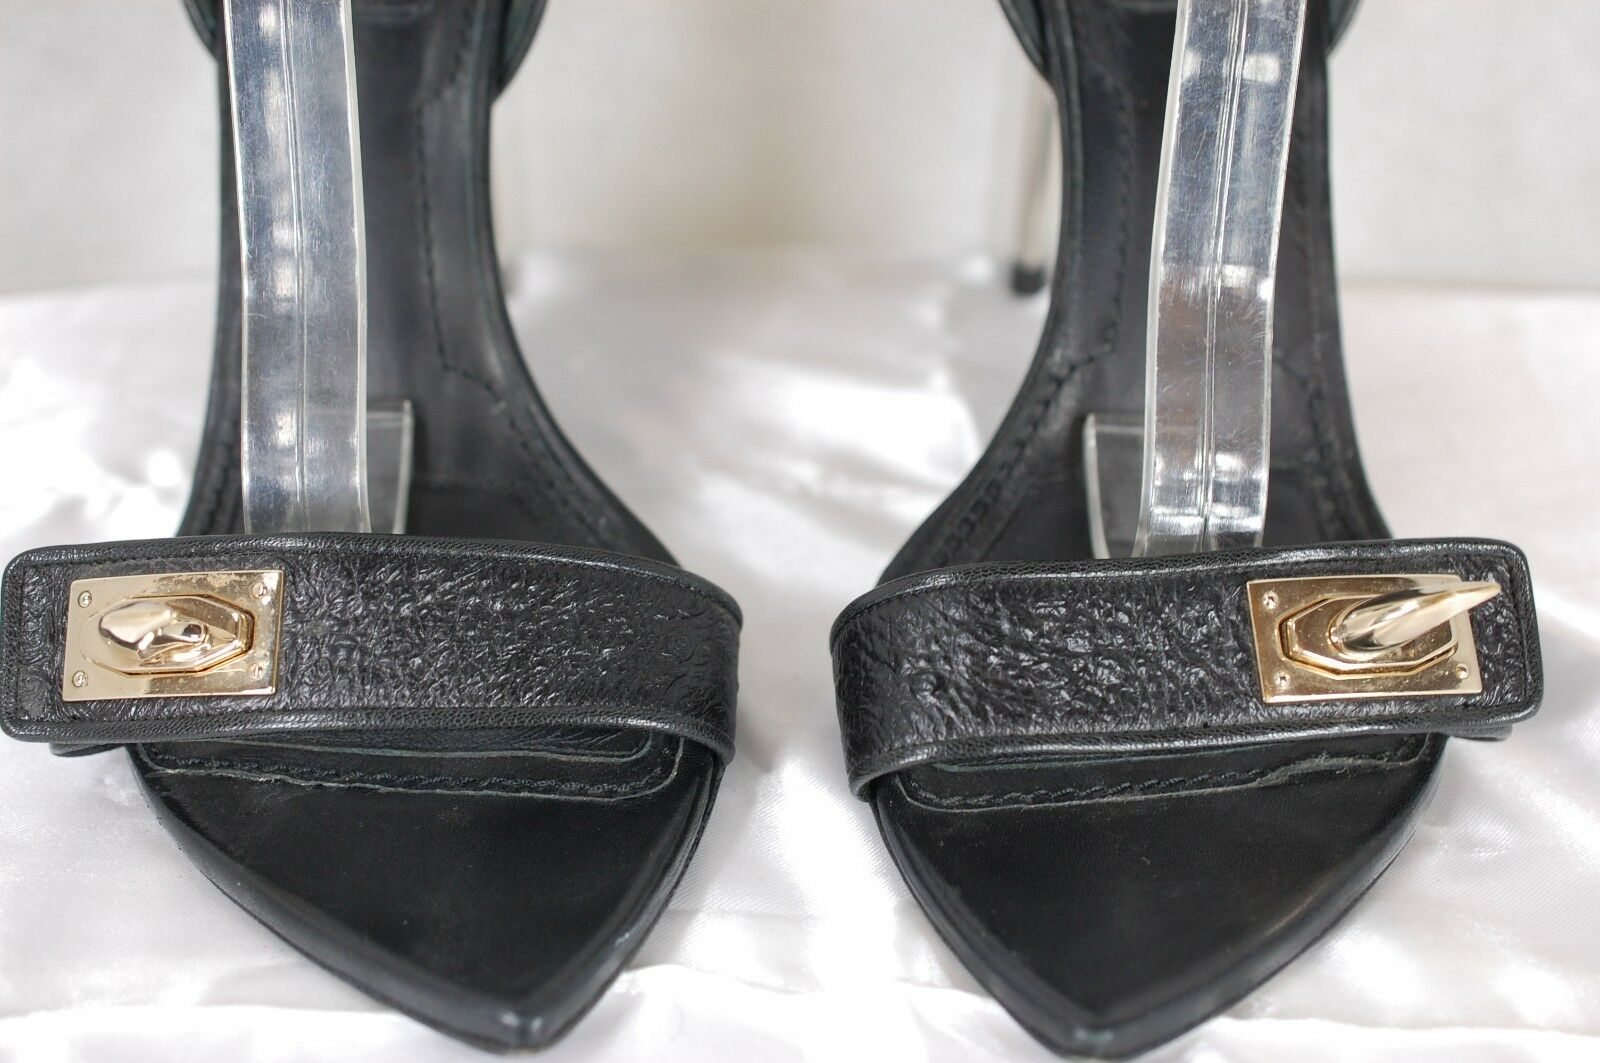 SUPPER SEXY     GIVENCHY GIVENCHY GIVENCHY SHARK-TOOTH-LOCK 'RUNWAY' BLACK SANDALS EU 40 US 10 7611f7